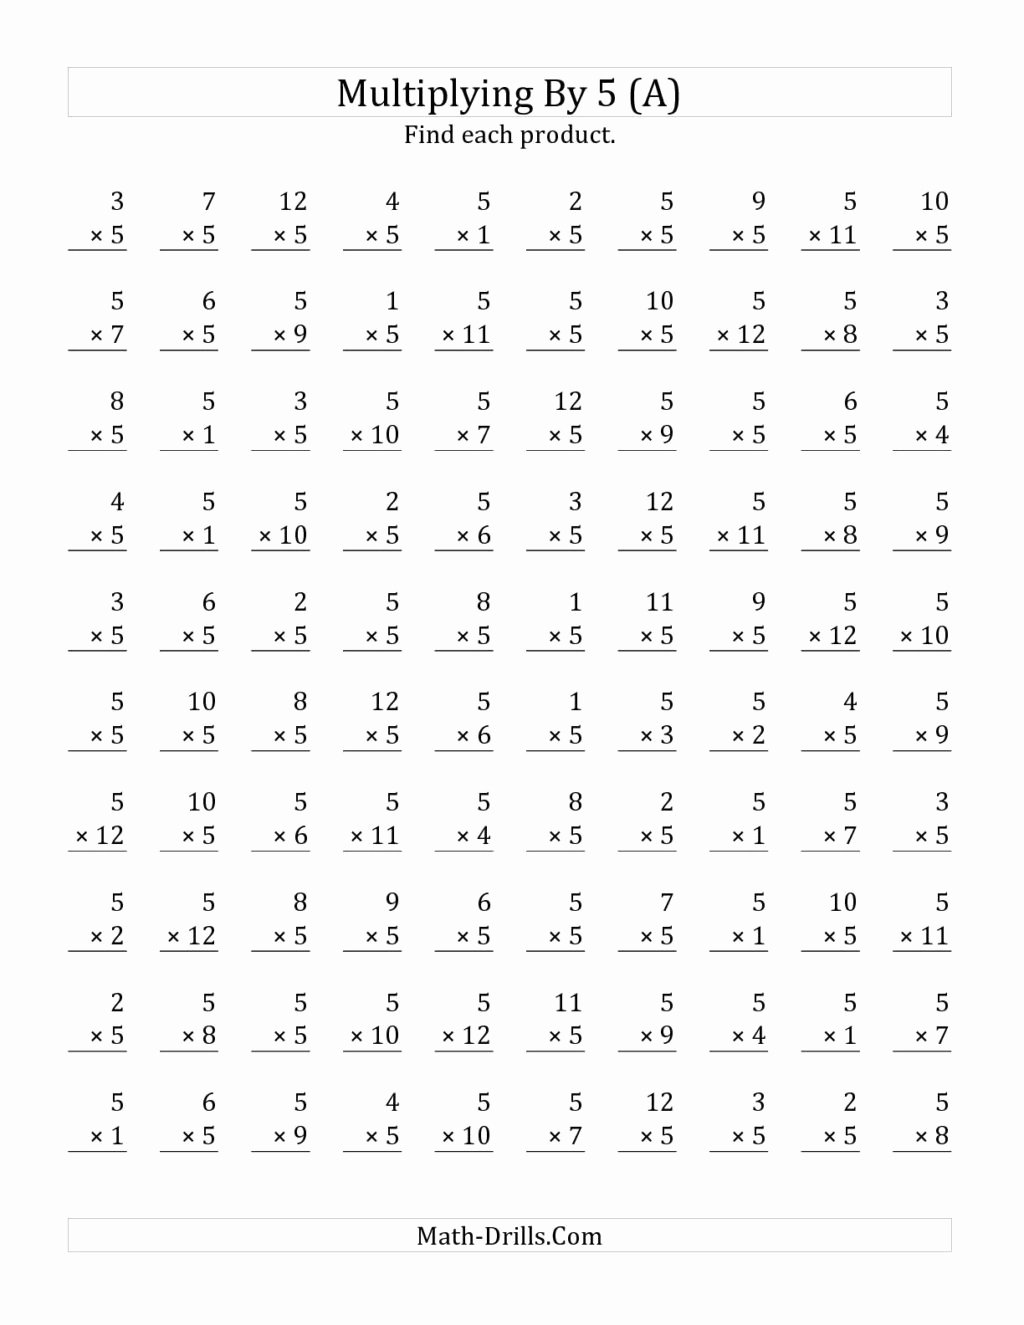 Multiplication Worksheets for 7th Grade New Worksheet 3rd Grade Multiplications to Print 4th 5th 7th